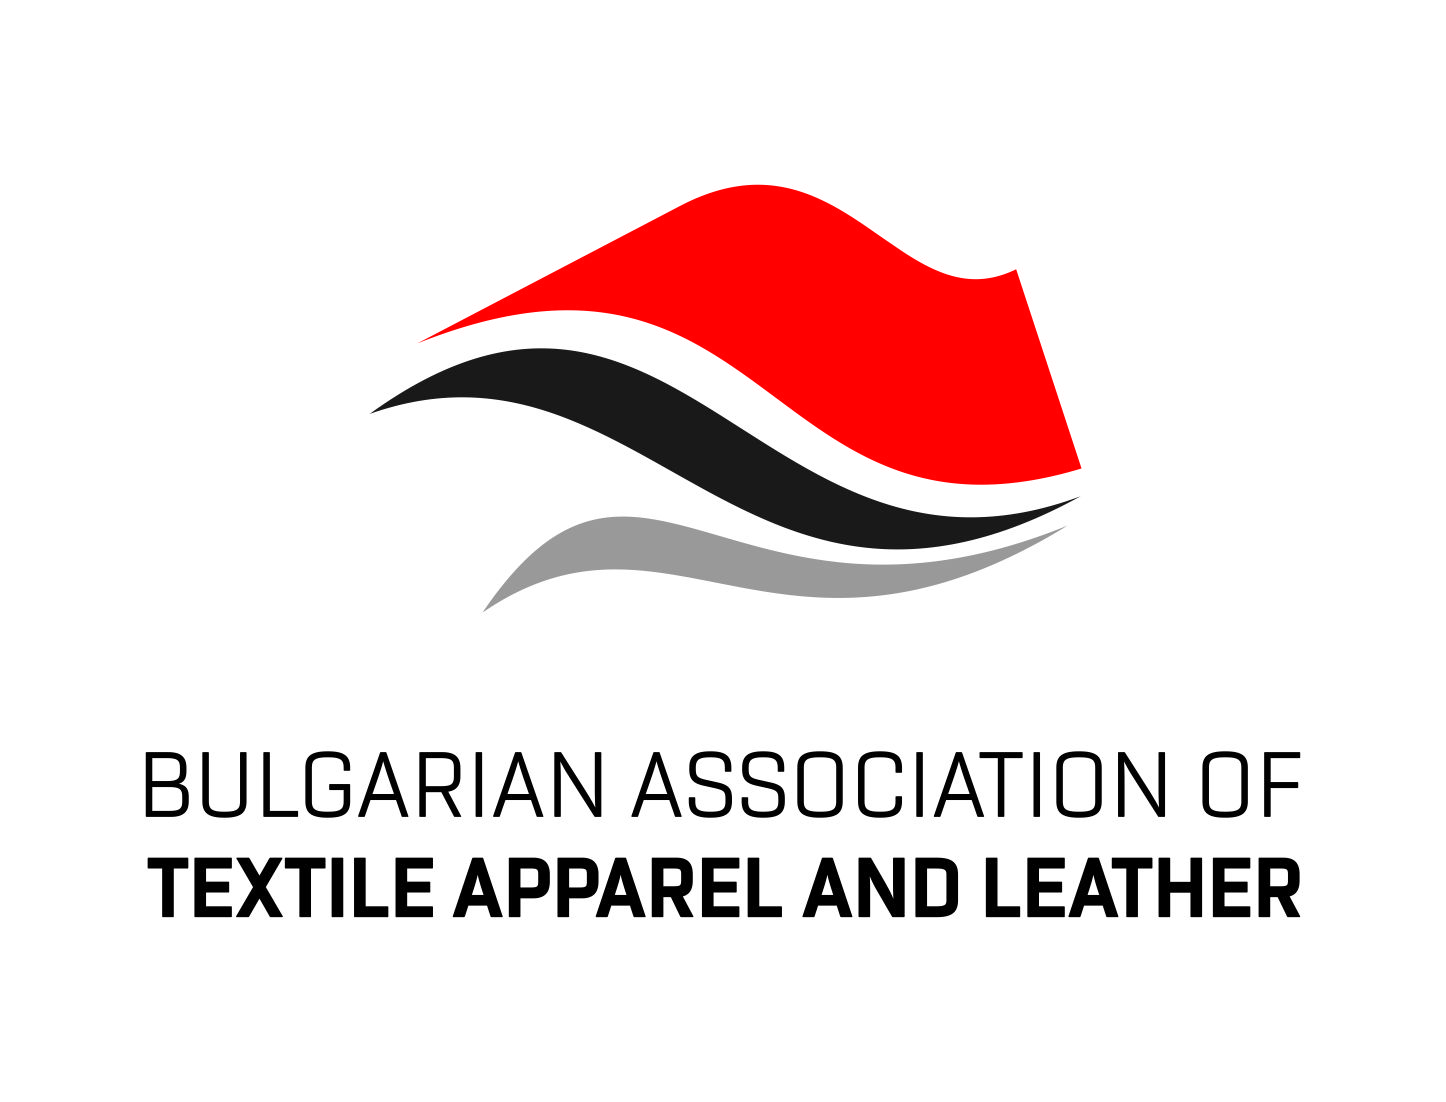 BULGARIAN ASSOCIATION FOR TEXTILE, CLOTHING AND LEATHER